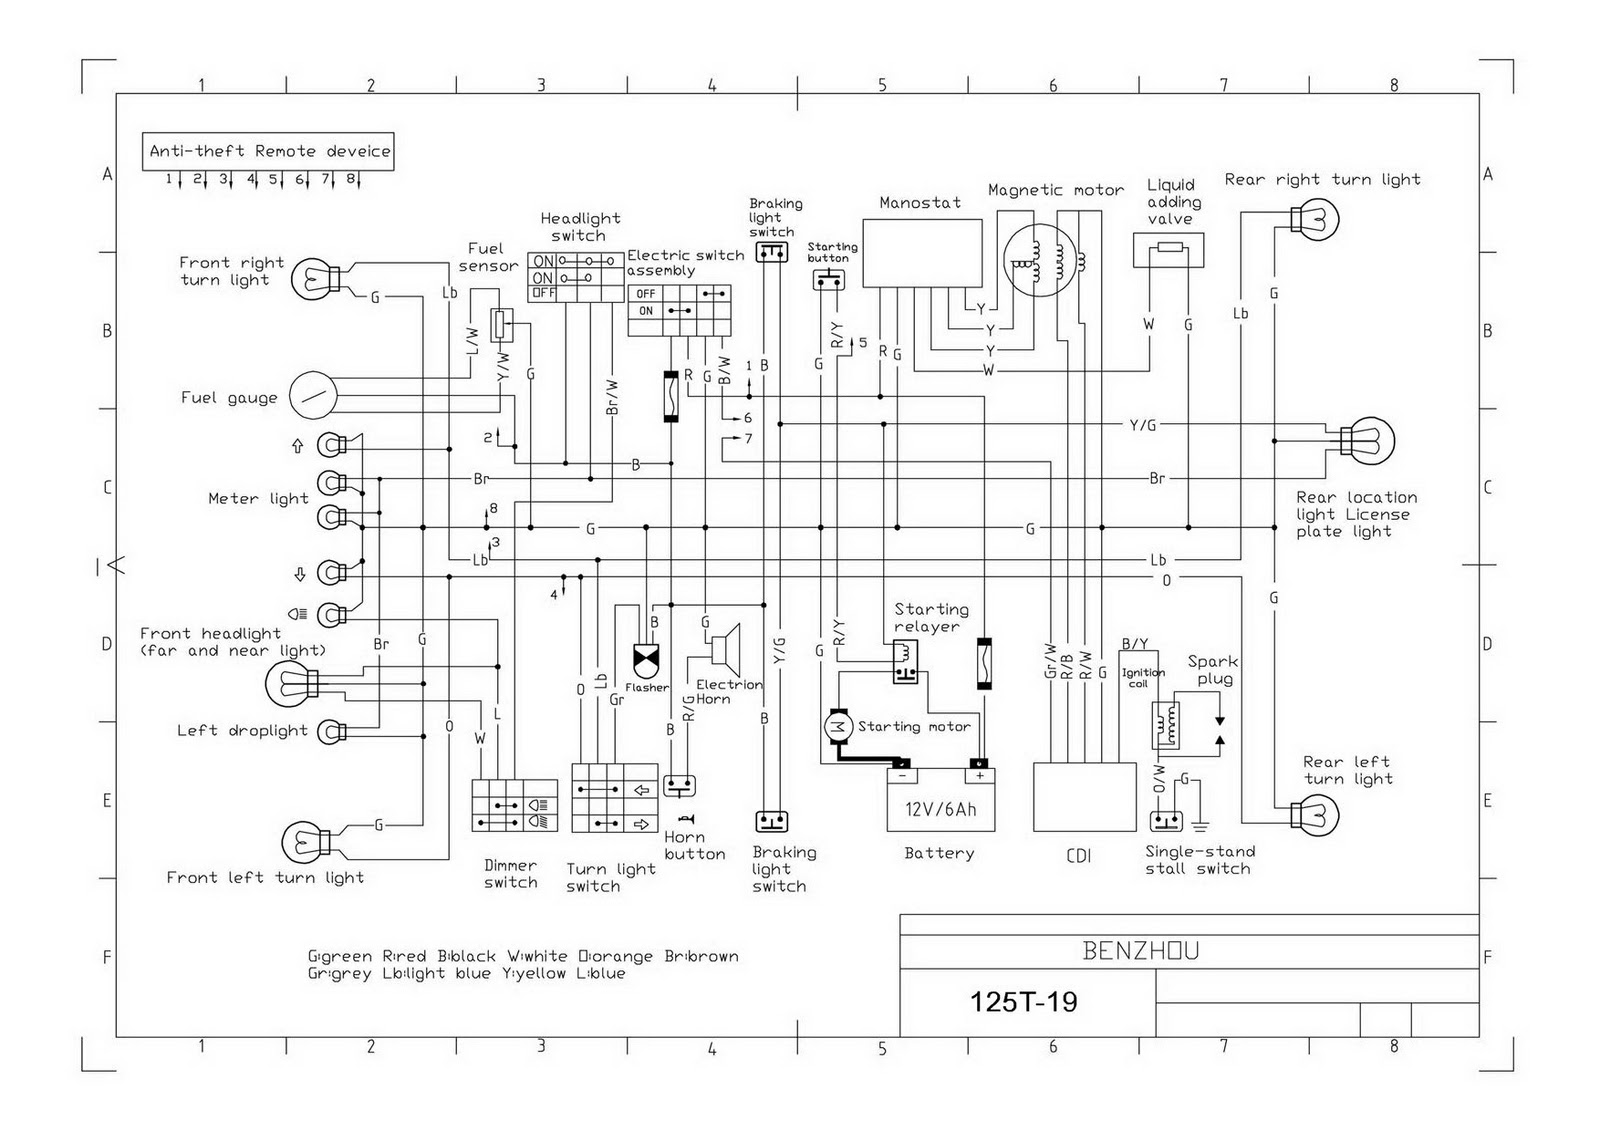 Wiring Diagram Yiying Yy T on dc cdi ignition wiring diagram